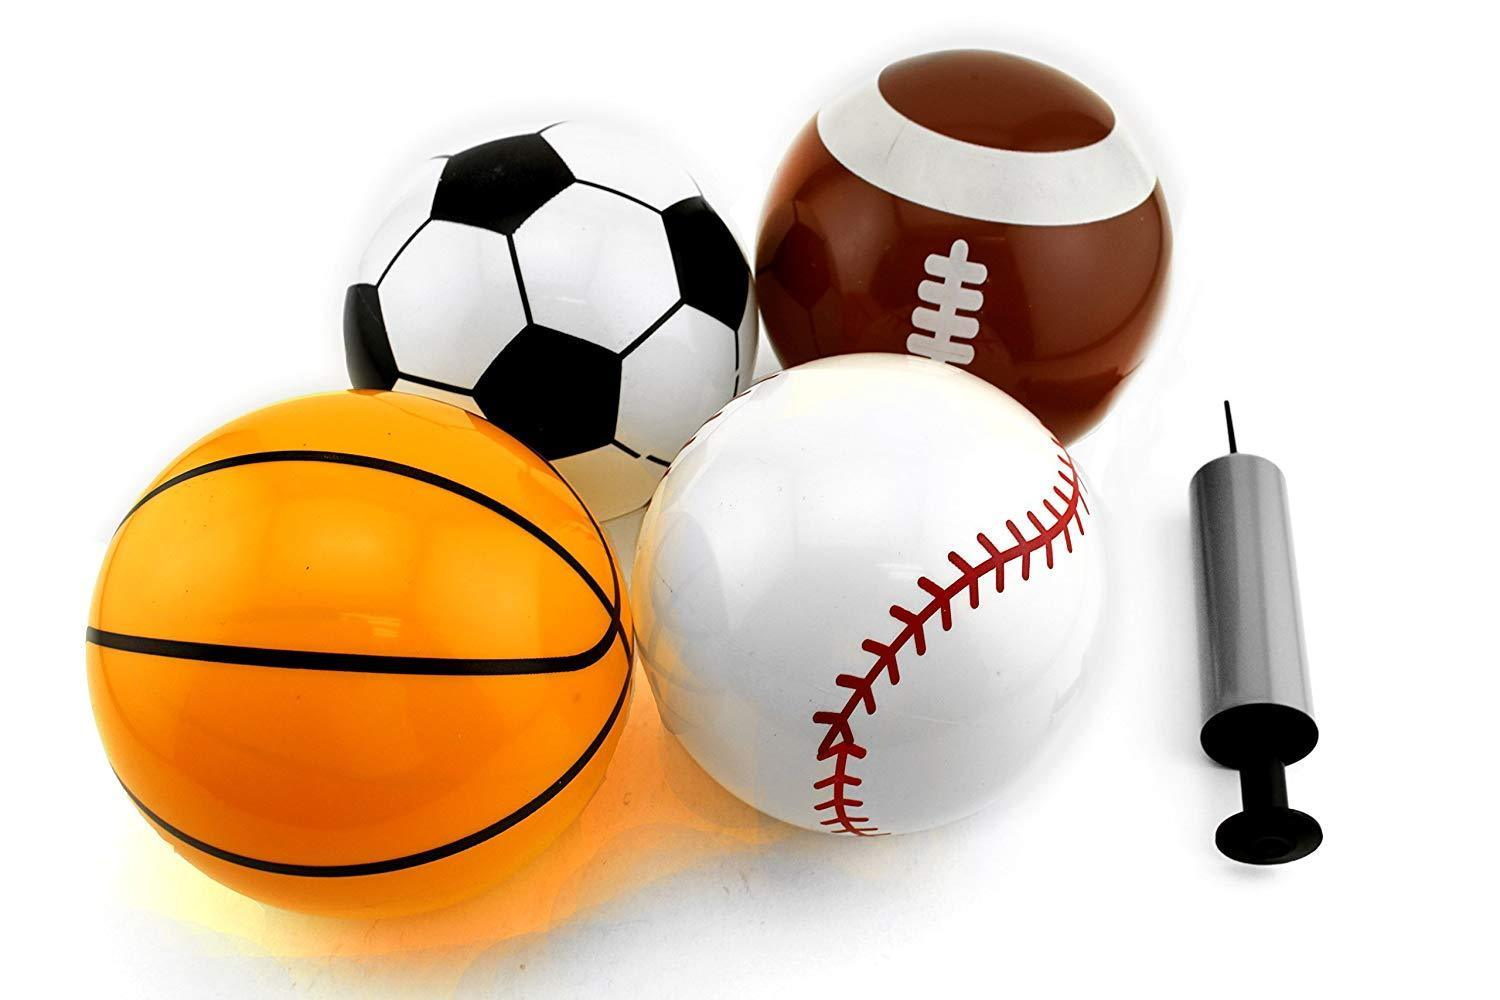 Global Inflatable Ball Market 2020 With COVID-19 Update | Adidas, Under  Armour, Spalding, Nike, Decathlon, STAR | Kentucky Journal 24